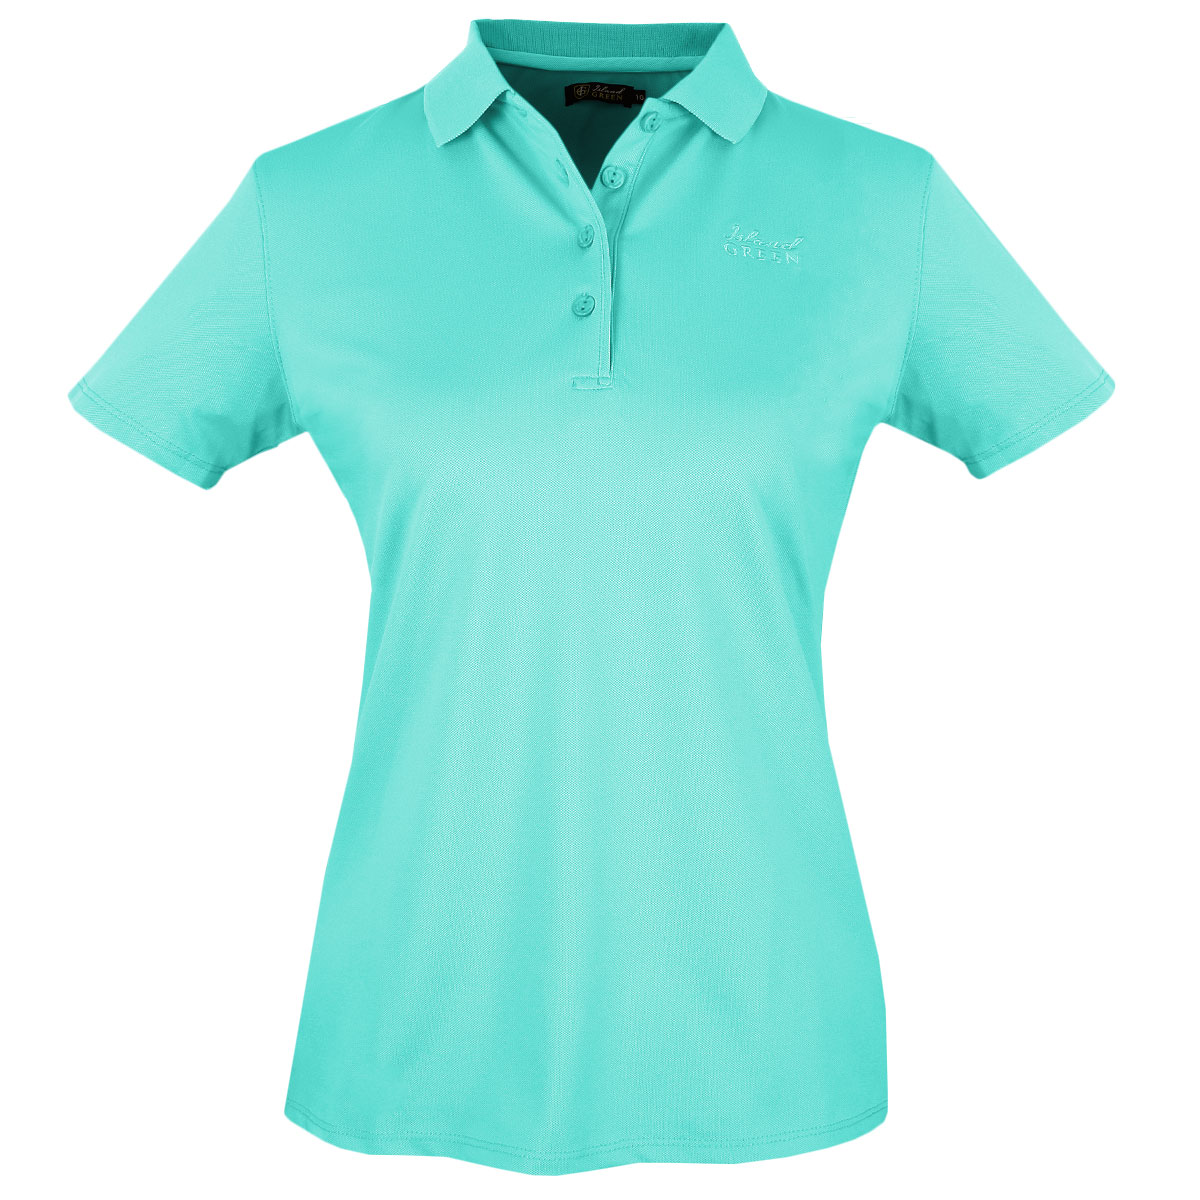 30 off rrp island green 2017 ladies plain golf polo shirt for Golf polo shirts for women